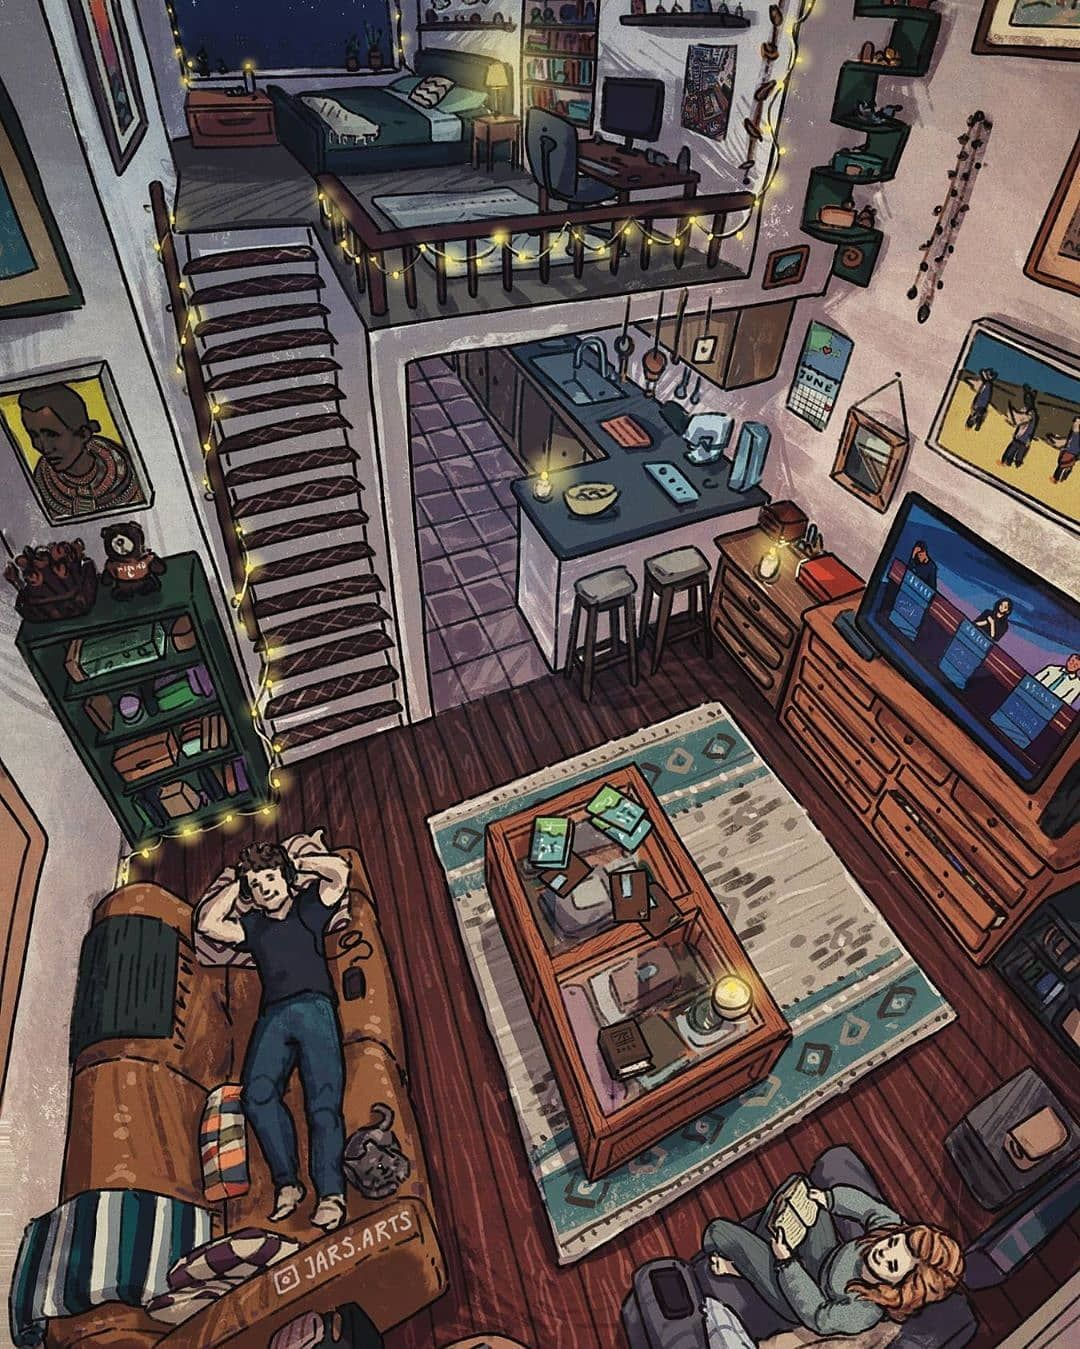 Art On Instagram Art By Jr S Arts Jars Arts Follow Psychedelicpicture For More Art Cabin Art Home Room Design Sims House Plans